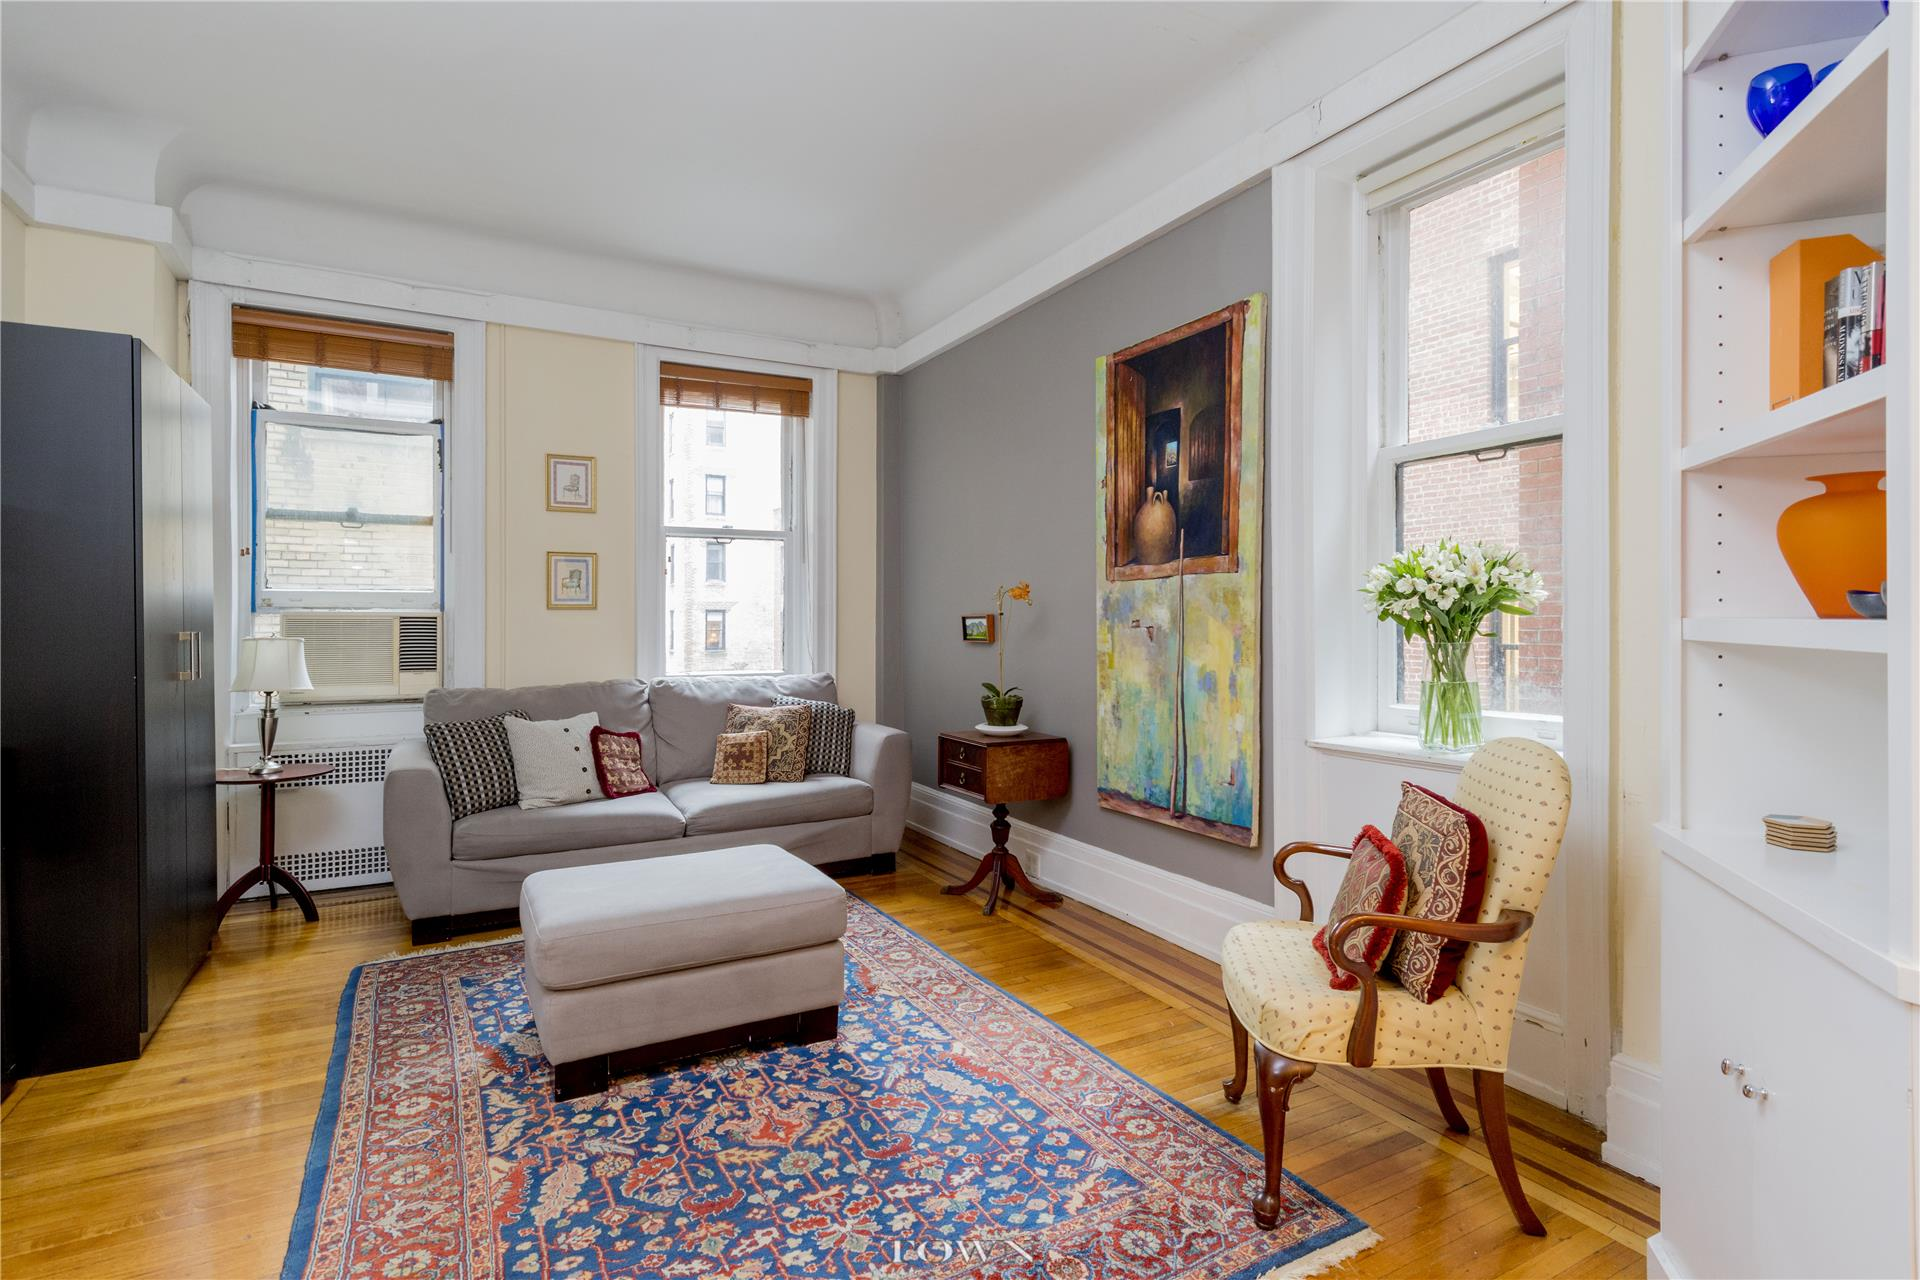 Condominium for Sale at 26 East 63rd Street, #4-C 26 East 63rd Street New York, New York 10065 United States